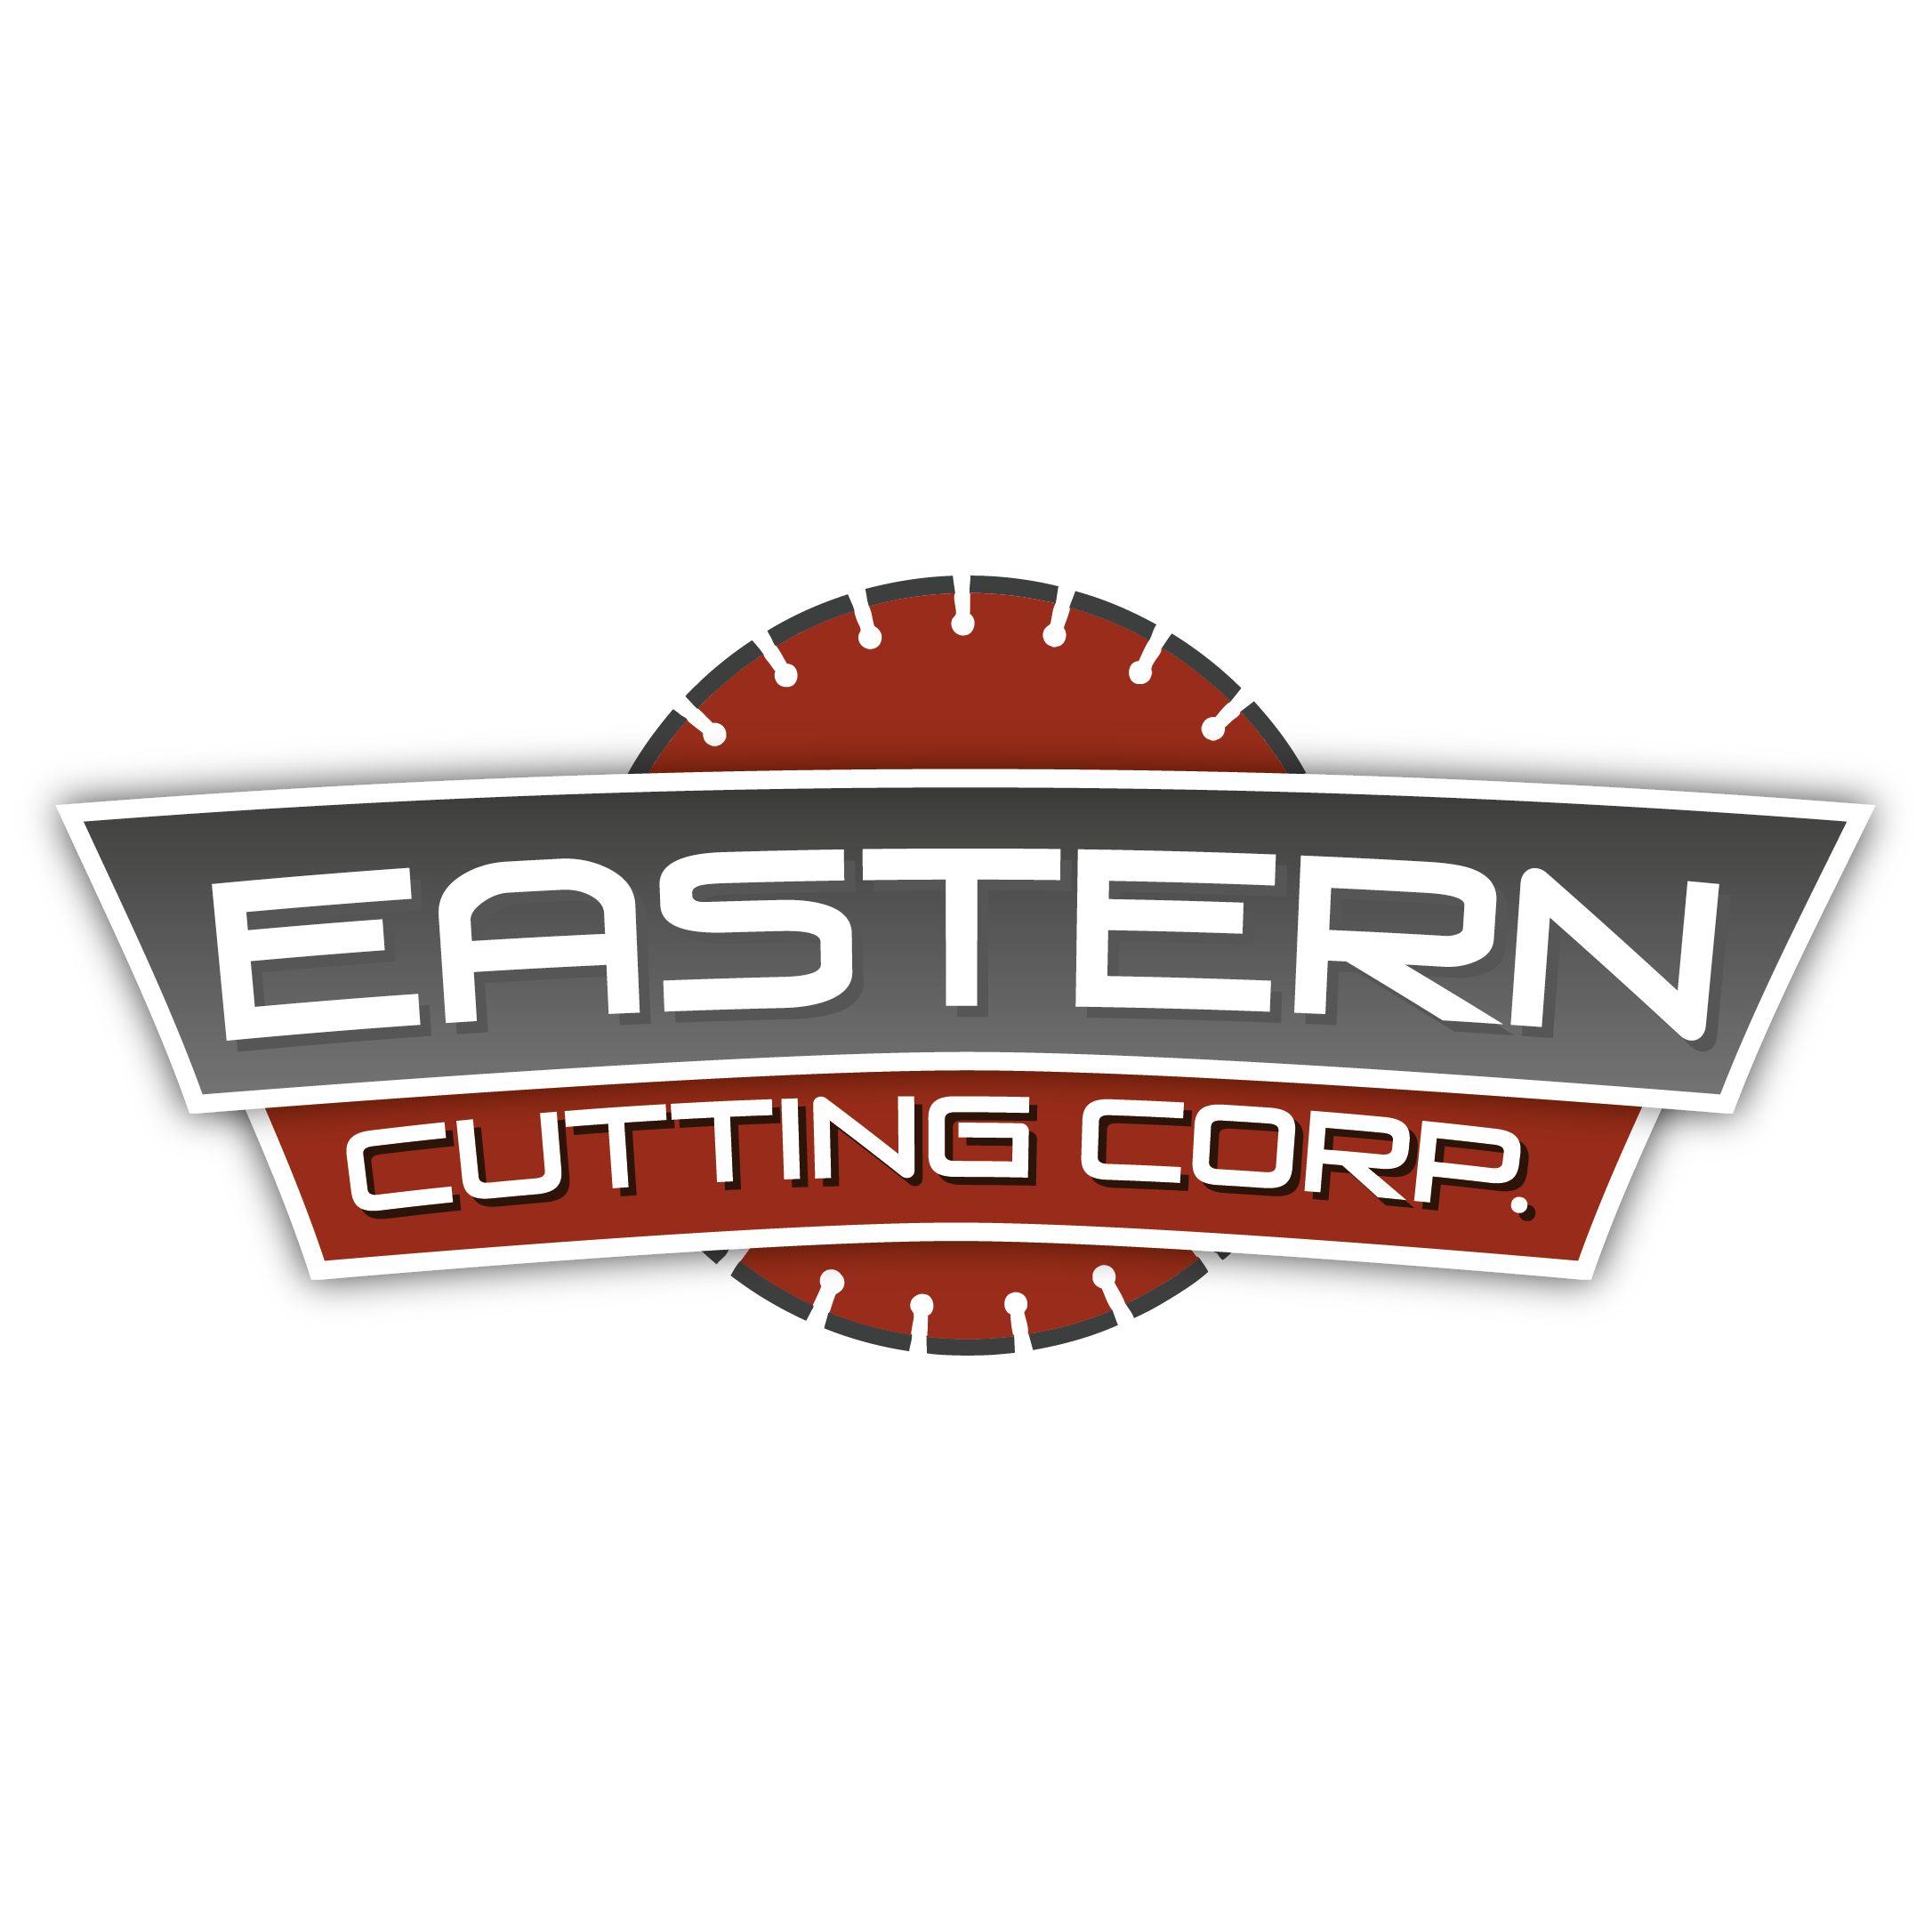 Eastern Cutting Corp.